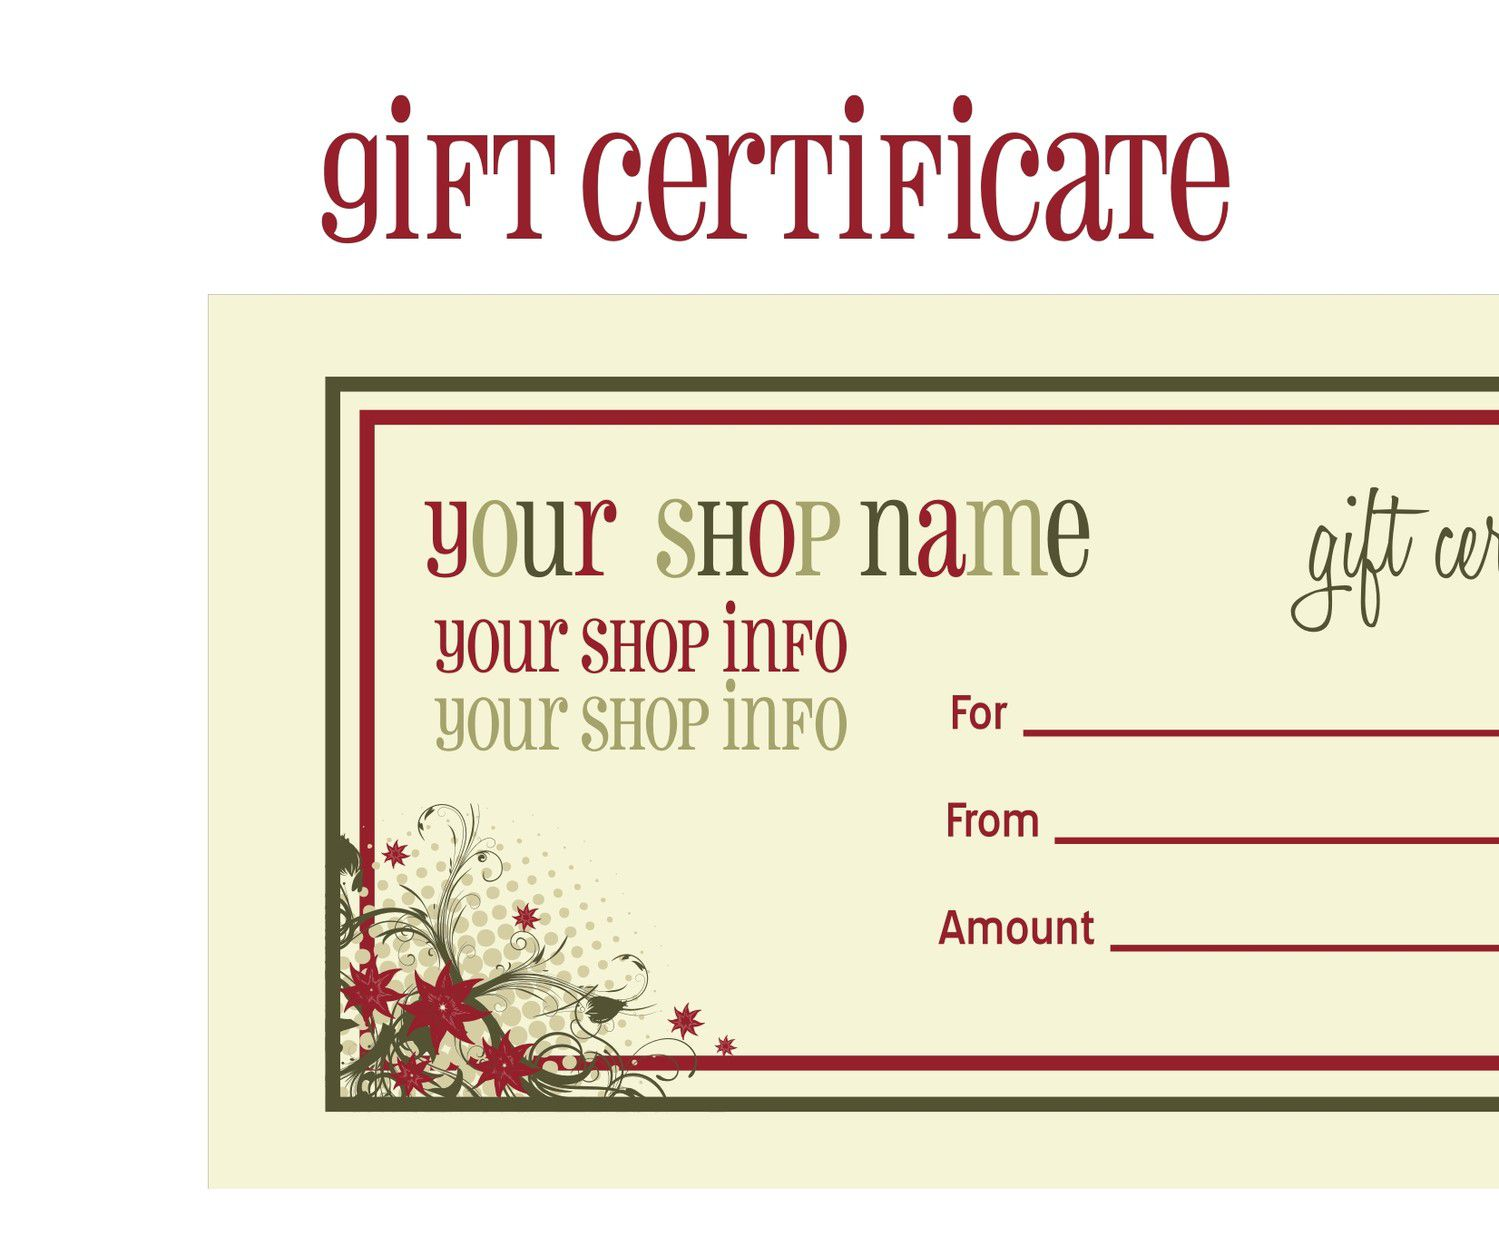 009 Surprising Free Printable Template For Gift Certificate Inspiration  VoucherFull